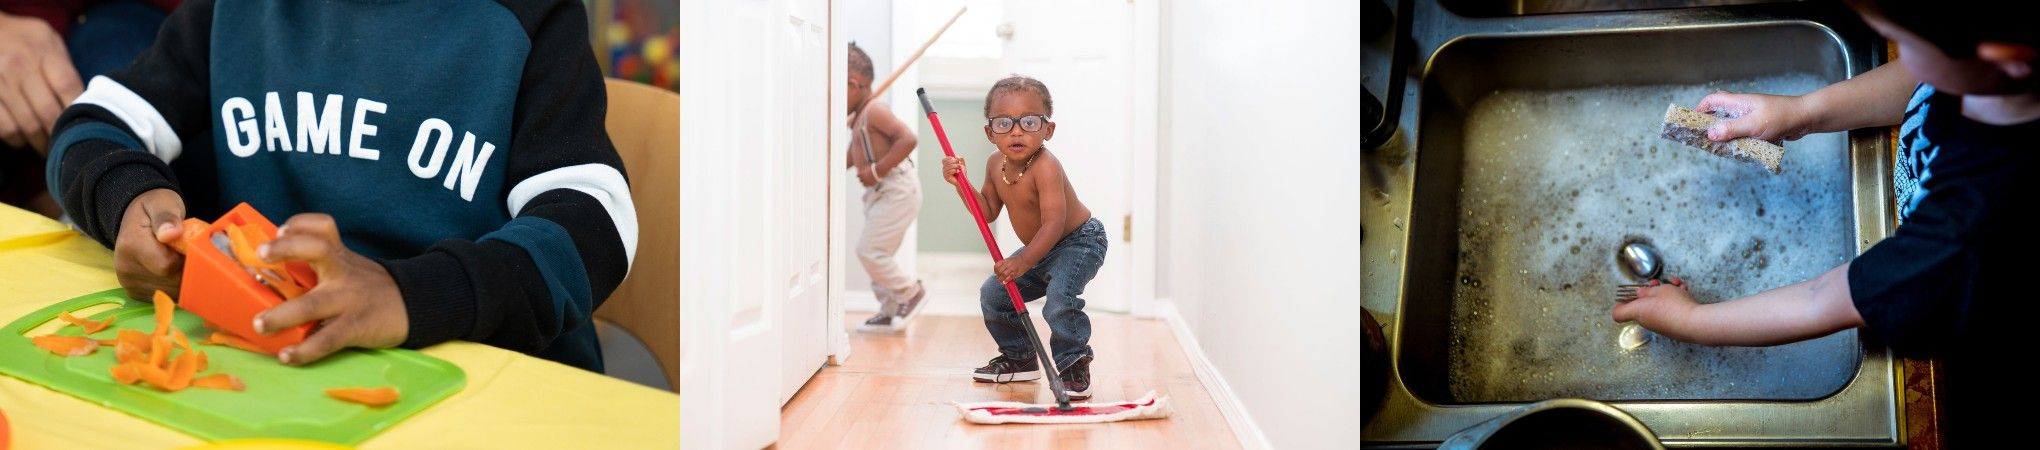 Fun cleaning games for kids